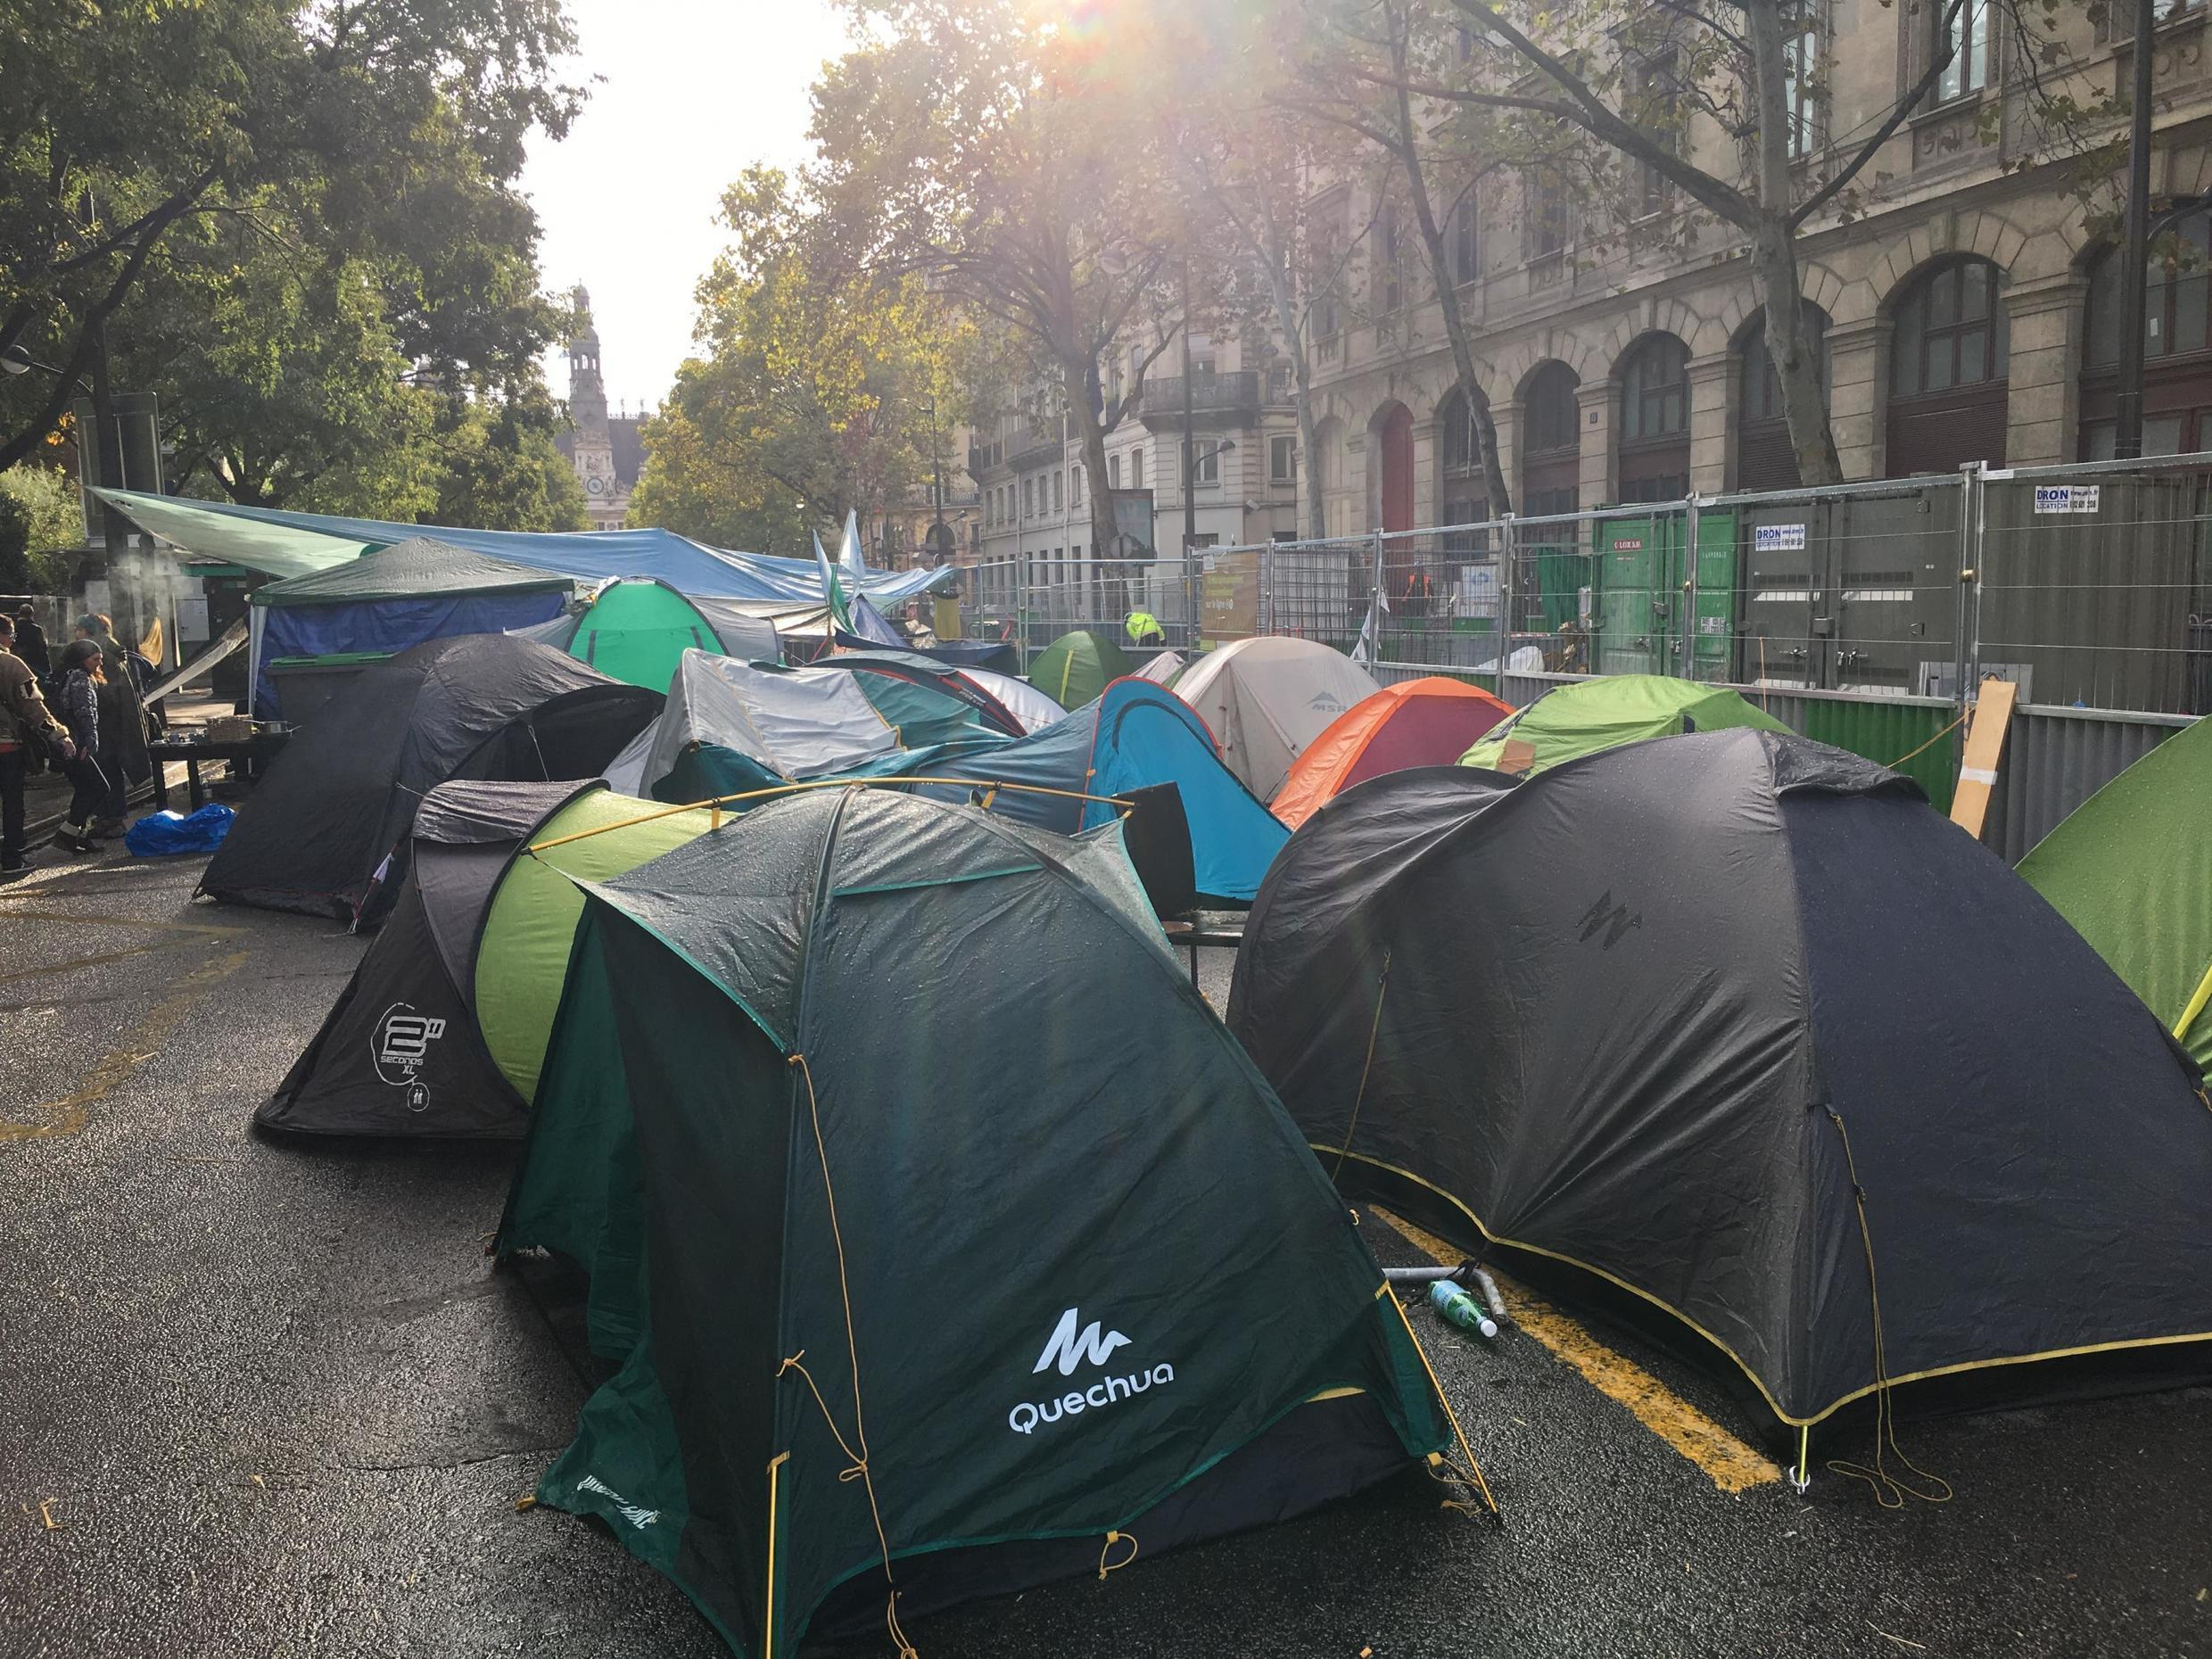 Dozens of tents housing some 200 activists are scattered around the Place du Chatelet. Many more people come to take part in activities throughout the day.